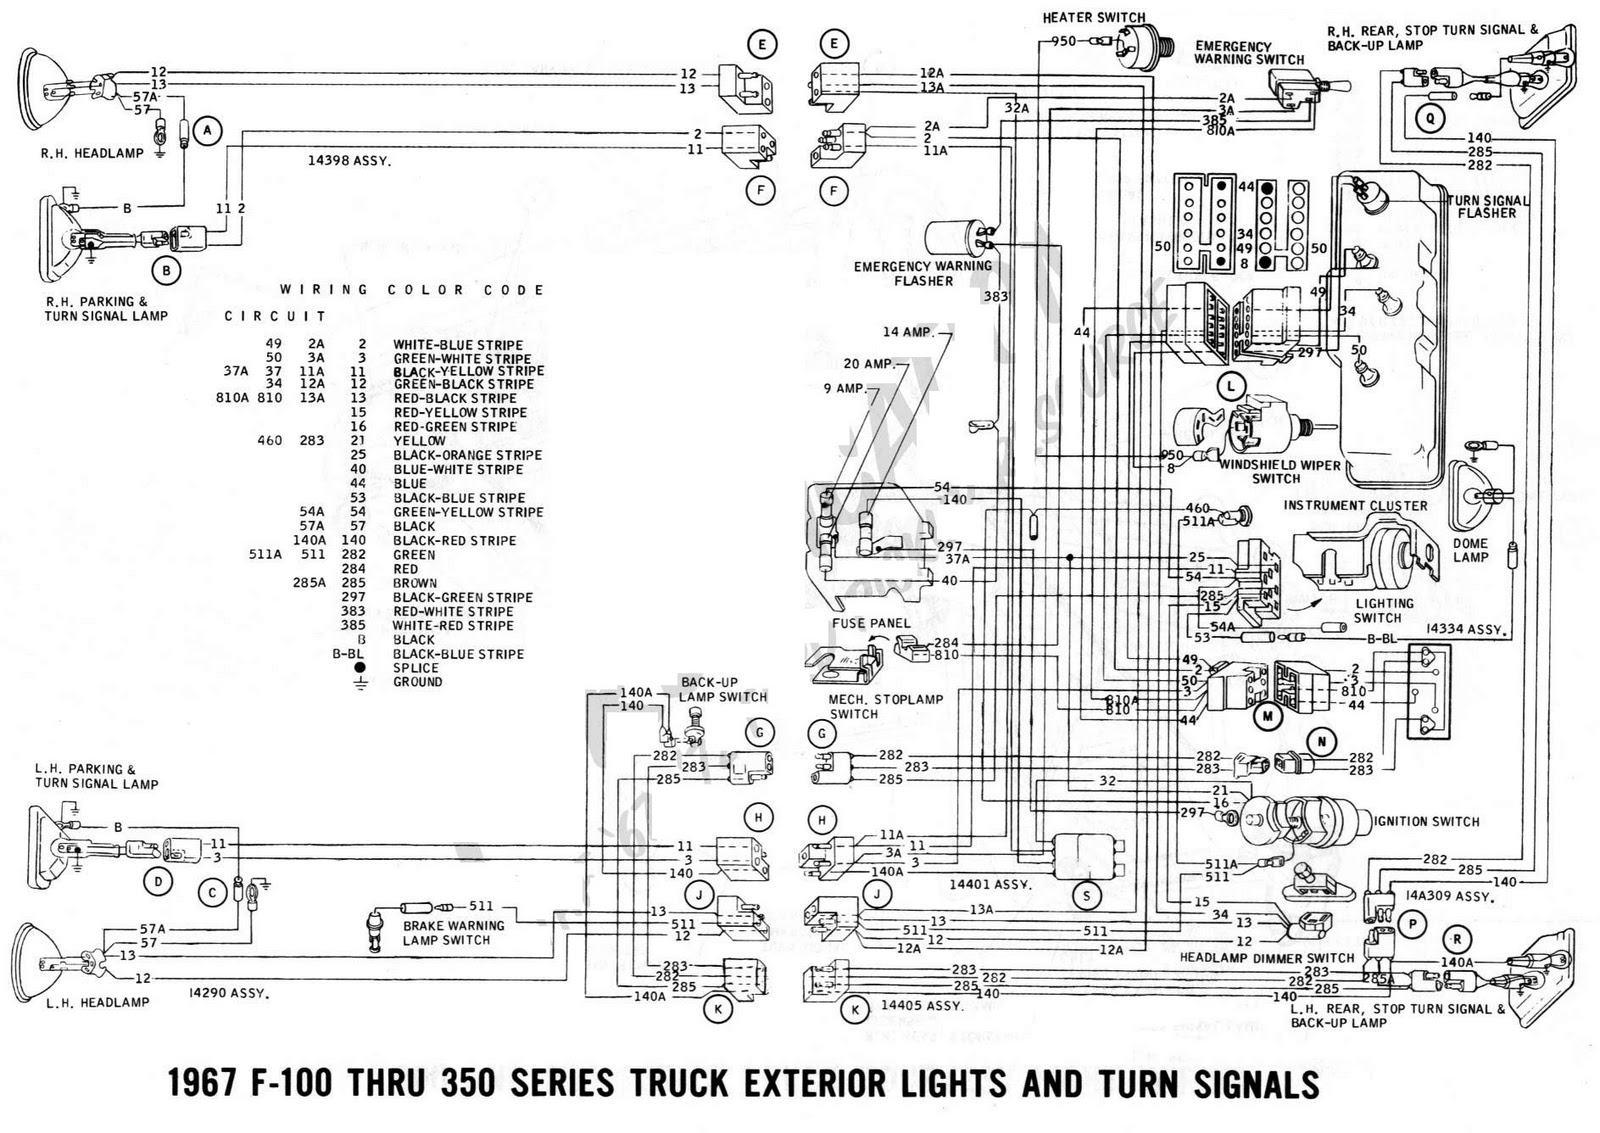 1967 Chevy Ii Wiring Diagram Another Blog About 1973 Pick Up 350 Starter Ecm 067h2 K6a 26 34 Connector 2001